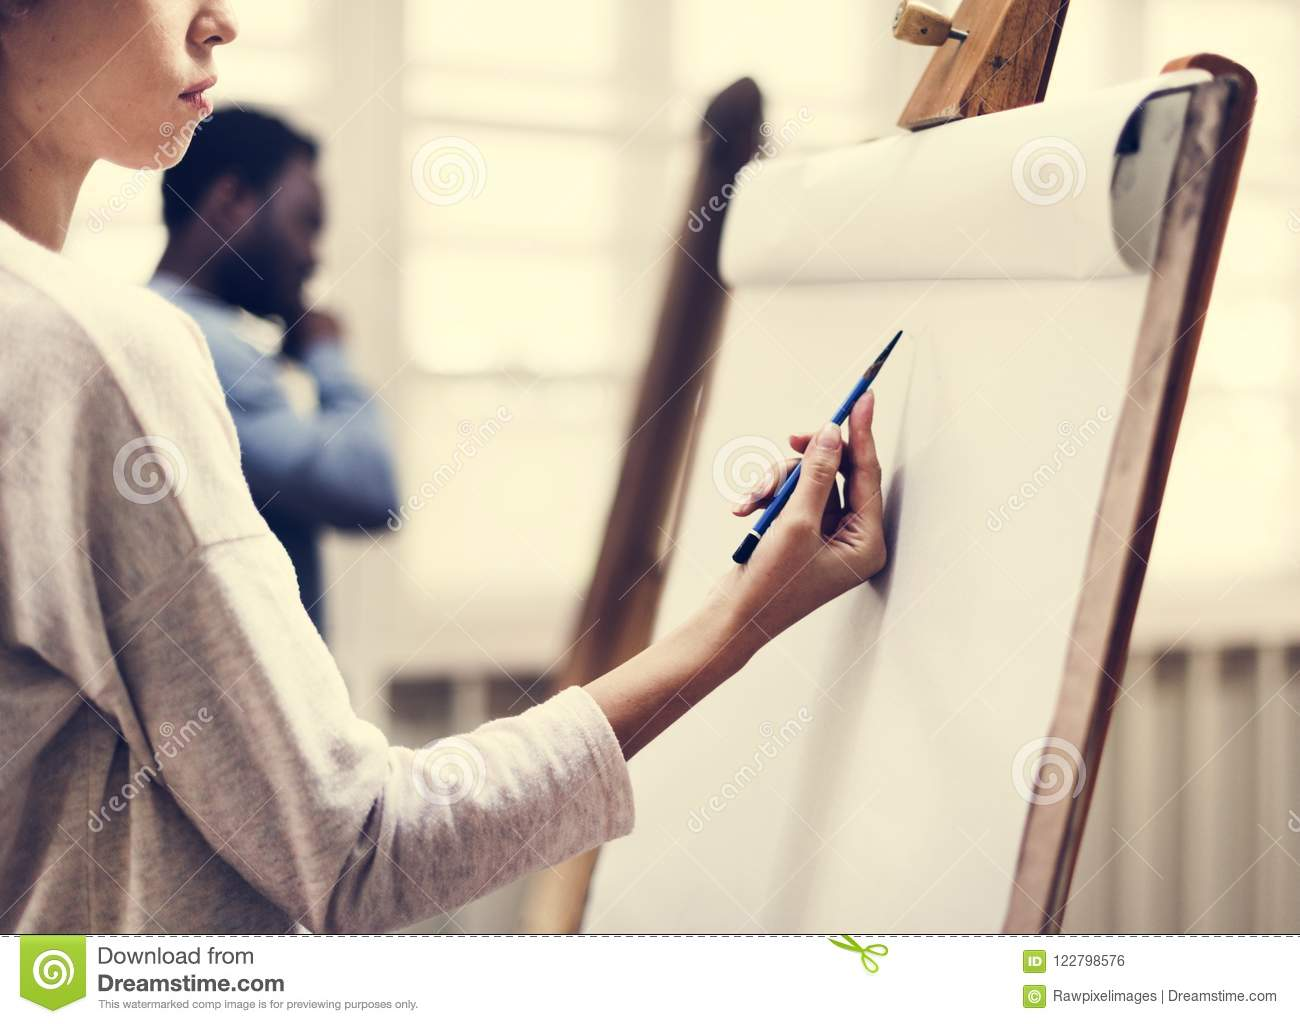 Artists drawing in art class